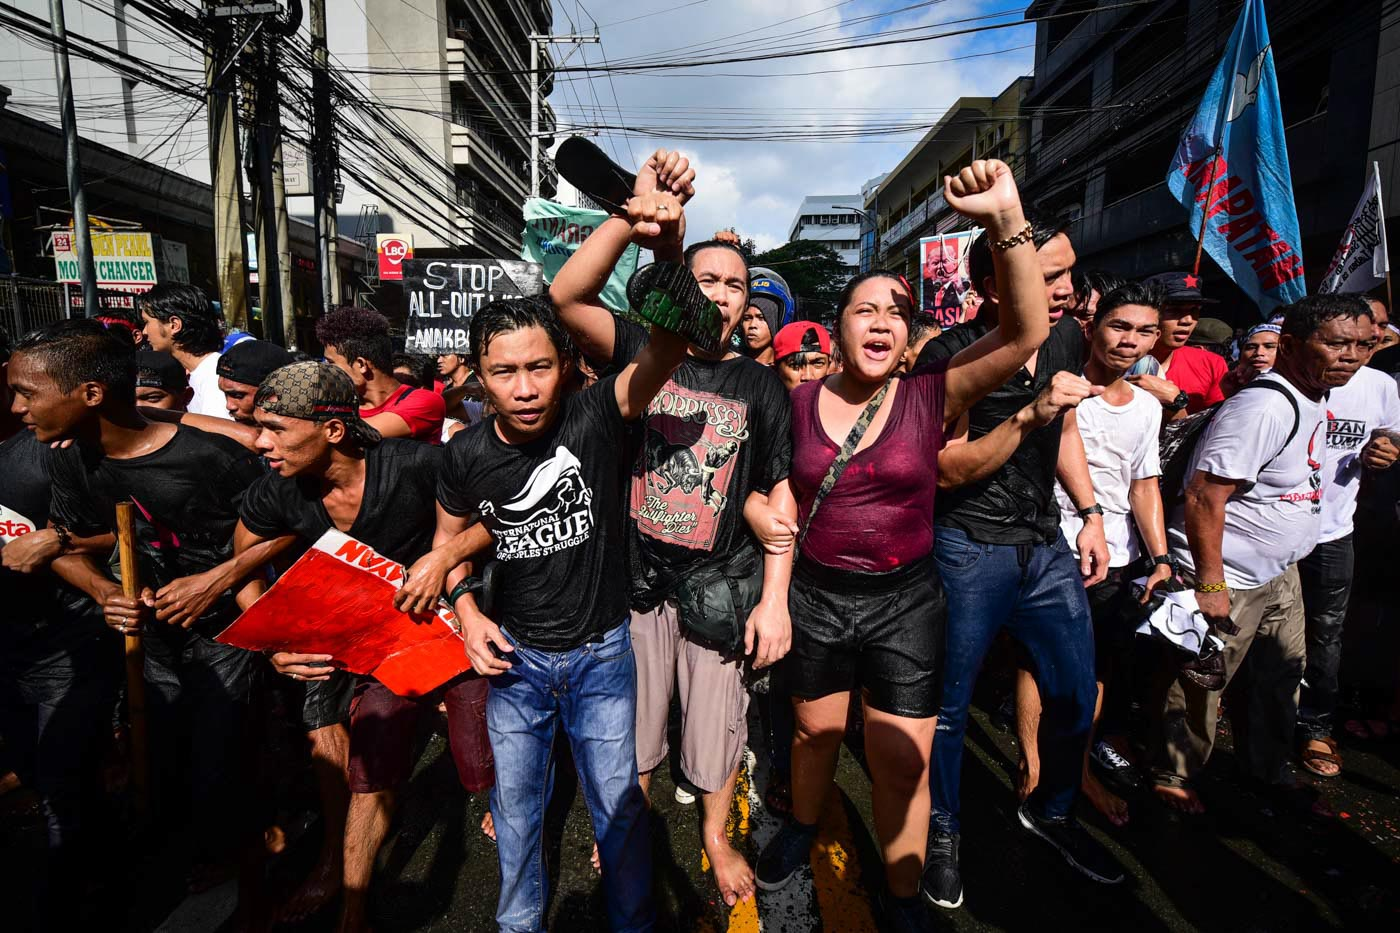 FIGHT CONTINUES. The groups were composed of people from different age groups. Photo by Alecs Ongcal/Rappler